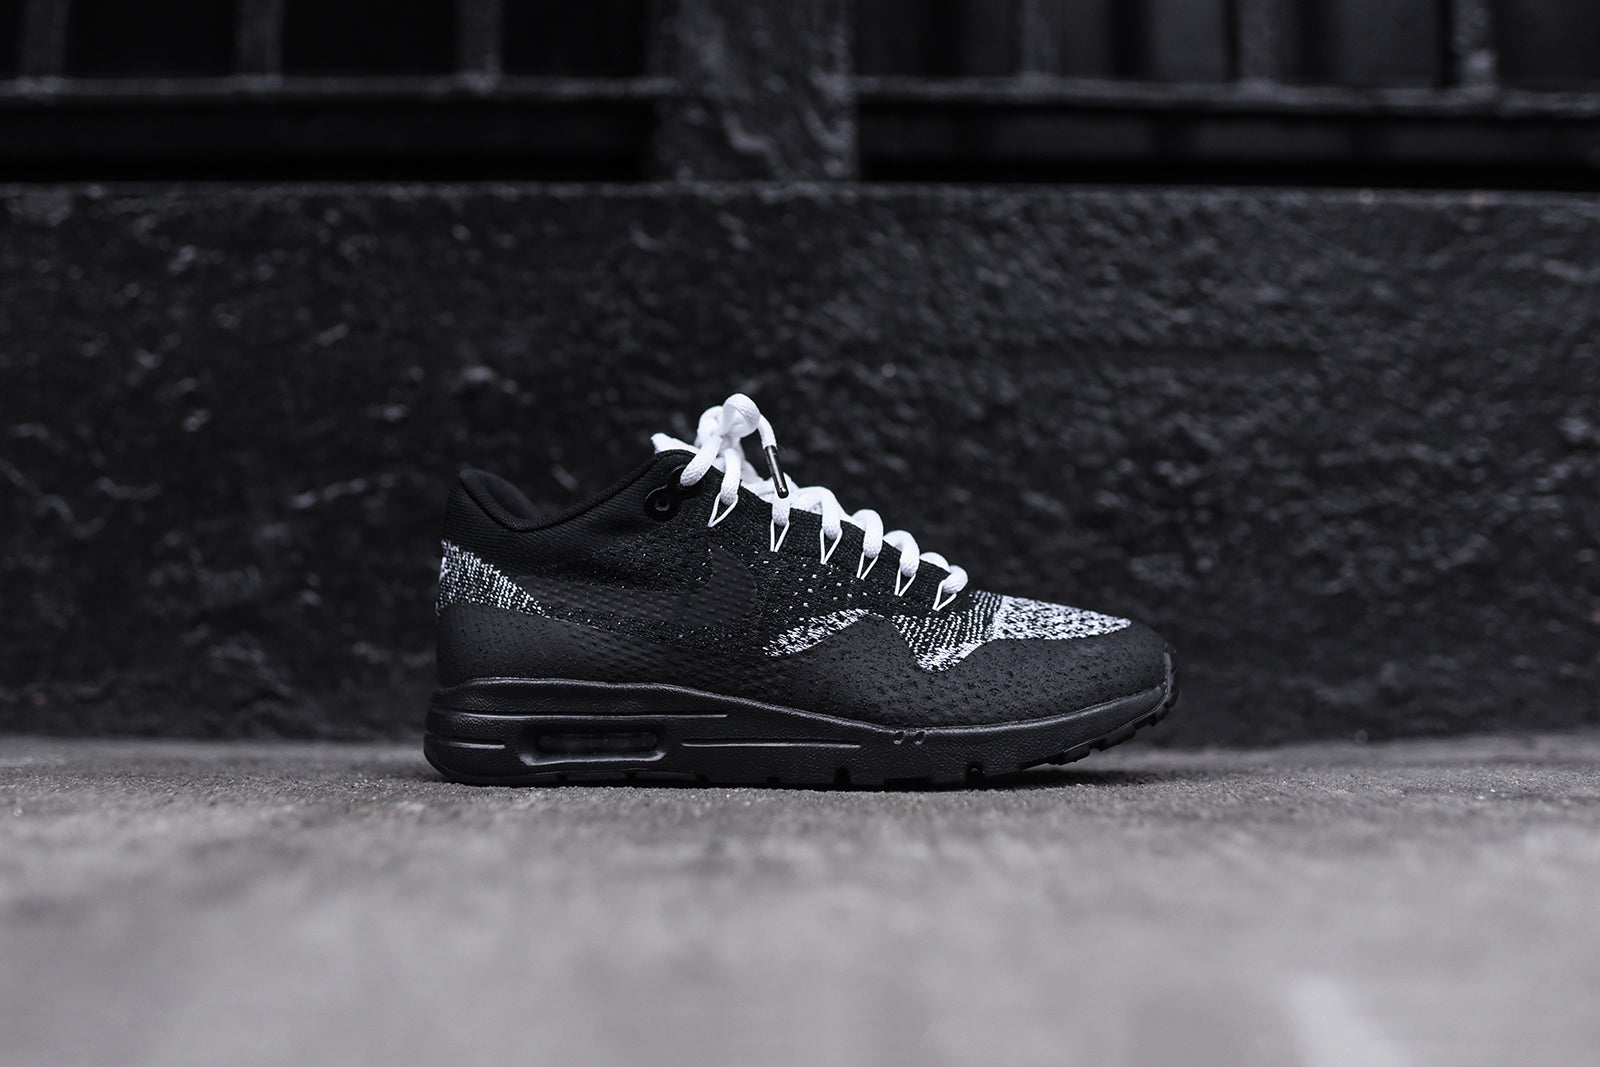 pretty nice 70956 e7a05 Nike WMNS Air Max 1 Ultra Flyknit - Black / Anthracite ...